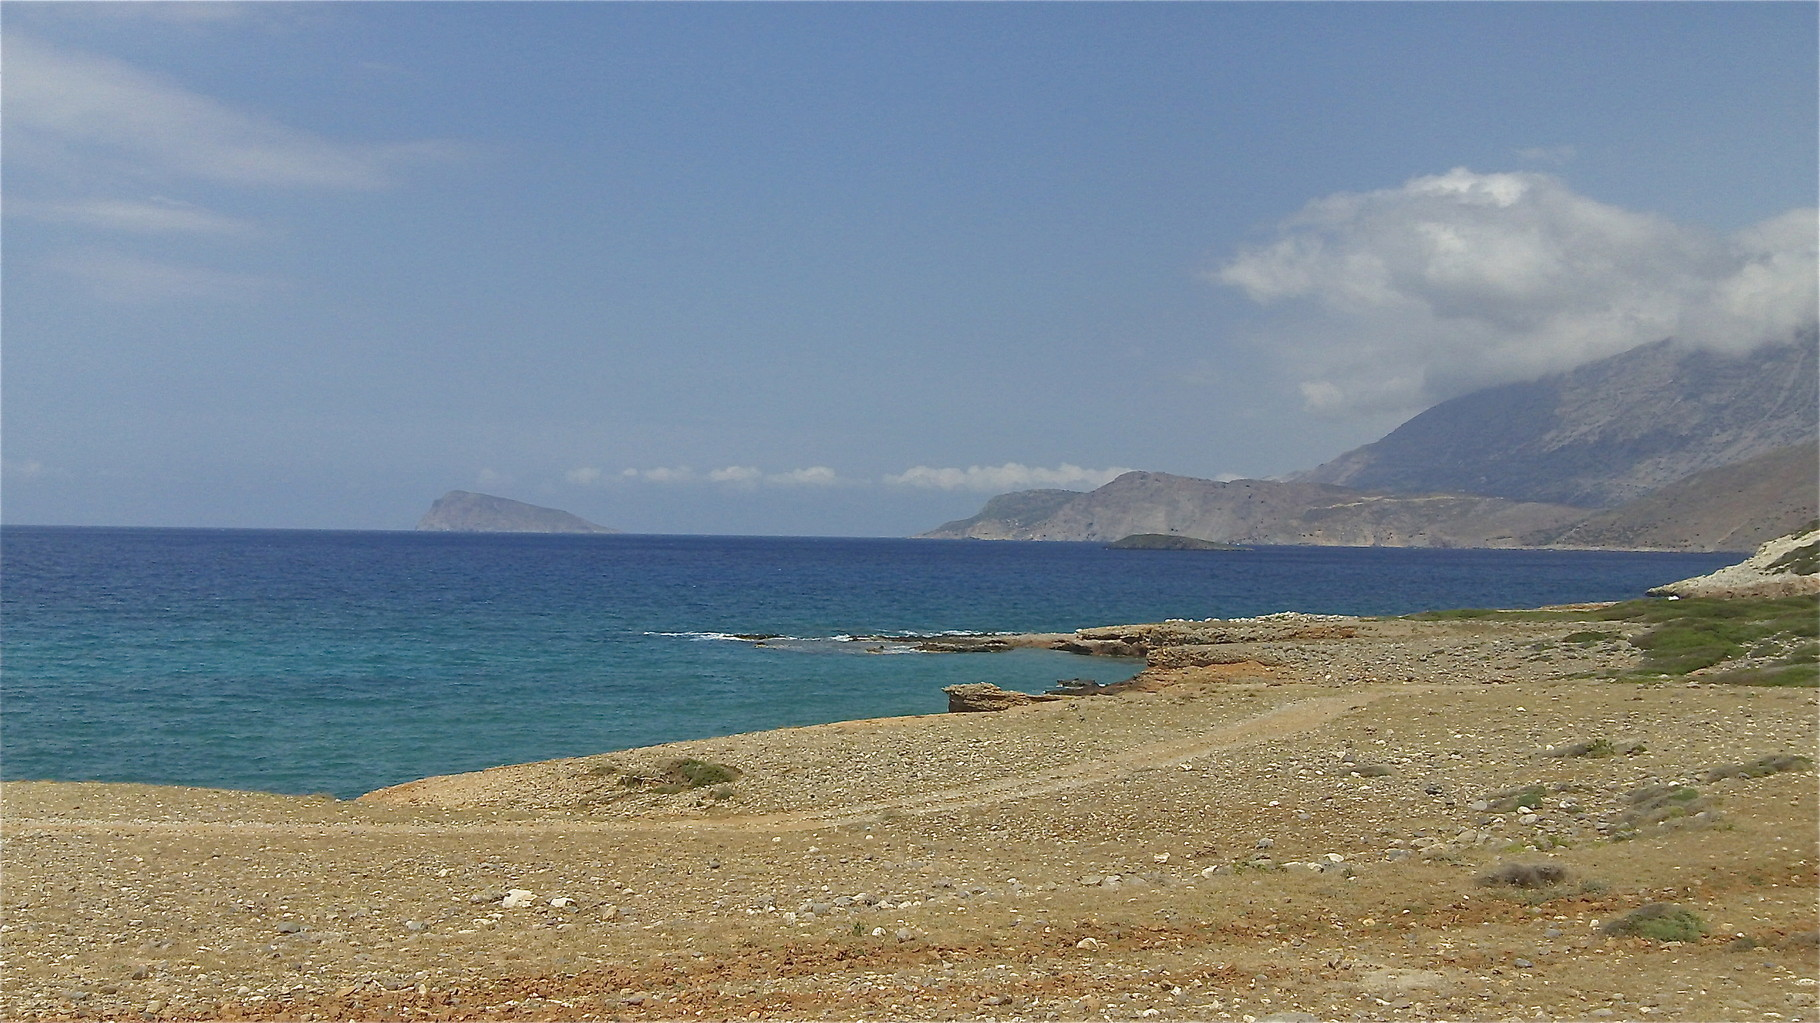 Beach near Gournia, Crete